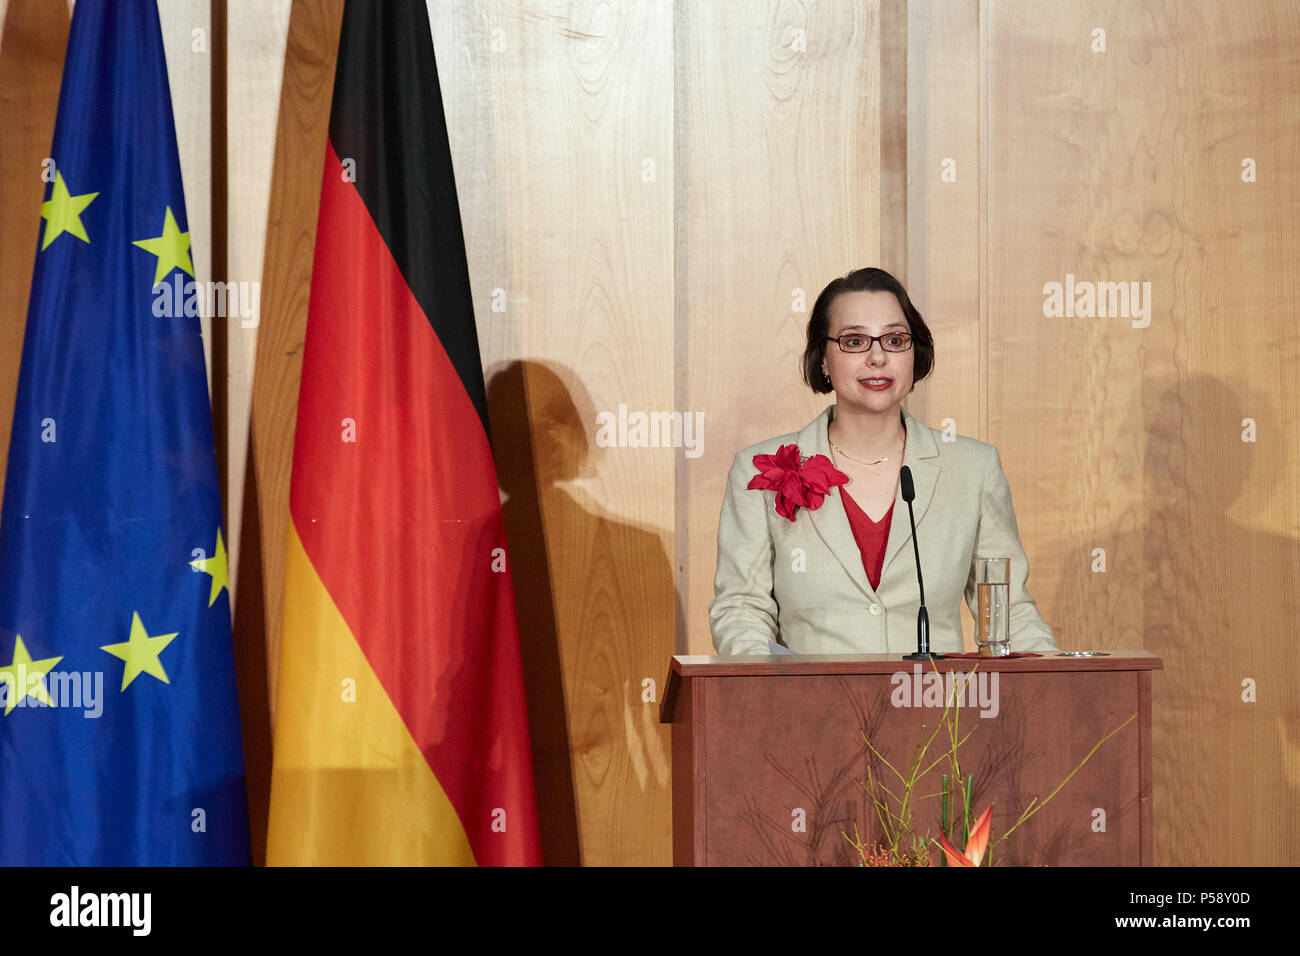 Berlin, Germany - Outgoing Foreign Minister Sigmar Gabriel holds his farewell speech at the ministerial change in the World Hall of the Foreign Ministry. - Stock Image